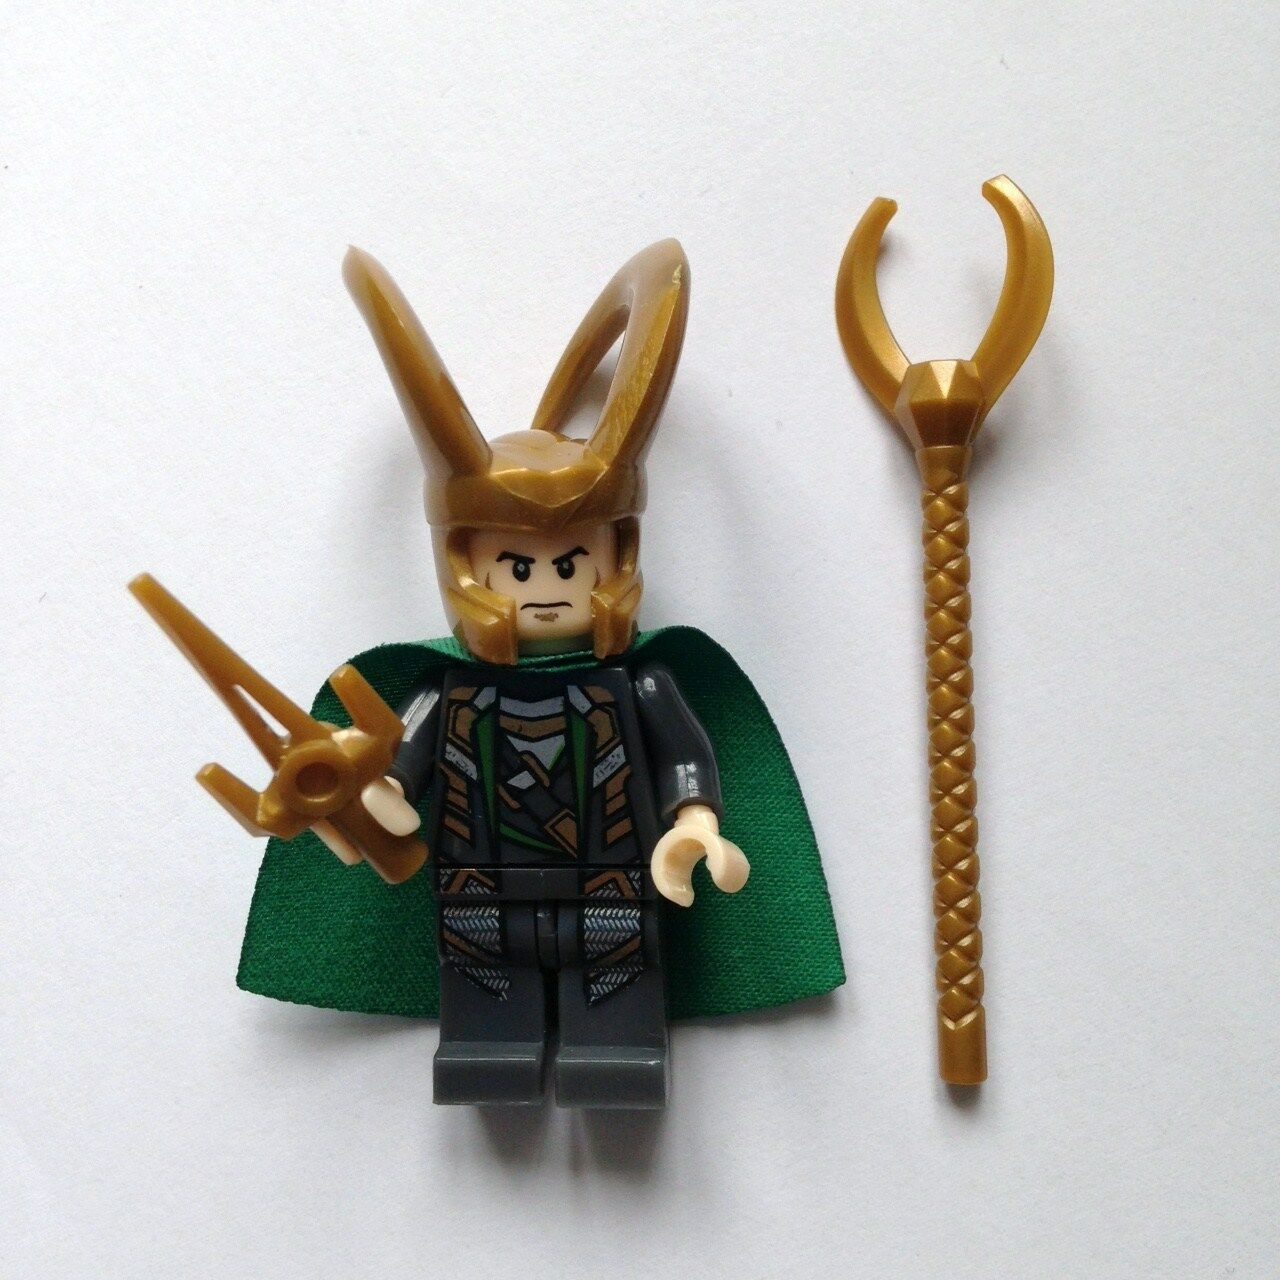 Loki Minifigure from the Avengers Marvel NEW Fits Lego UK SELLER